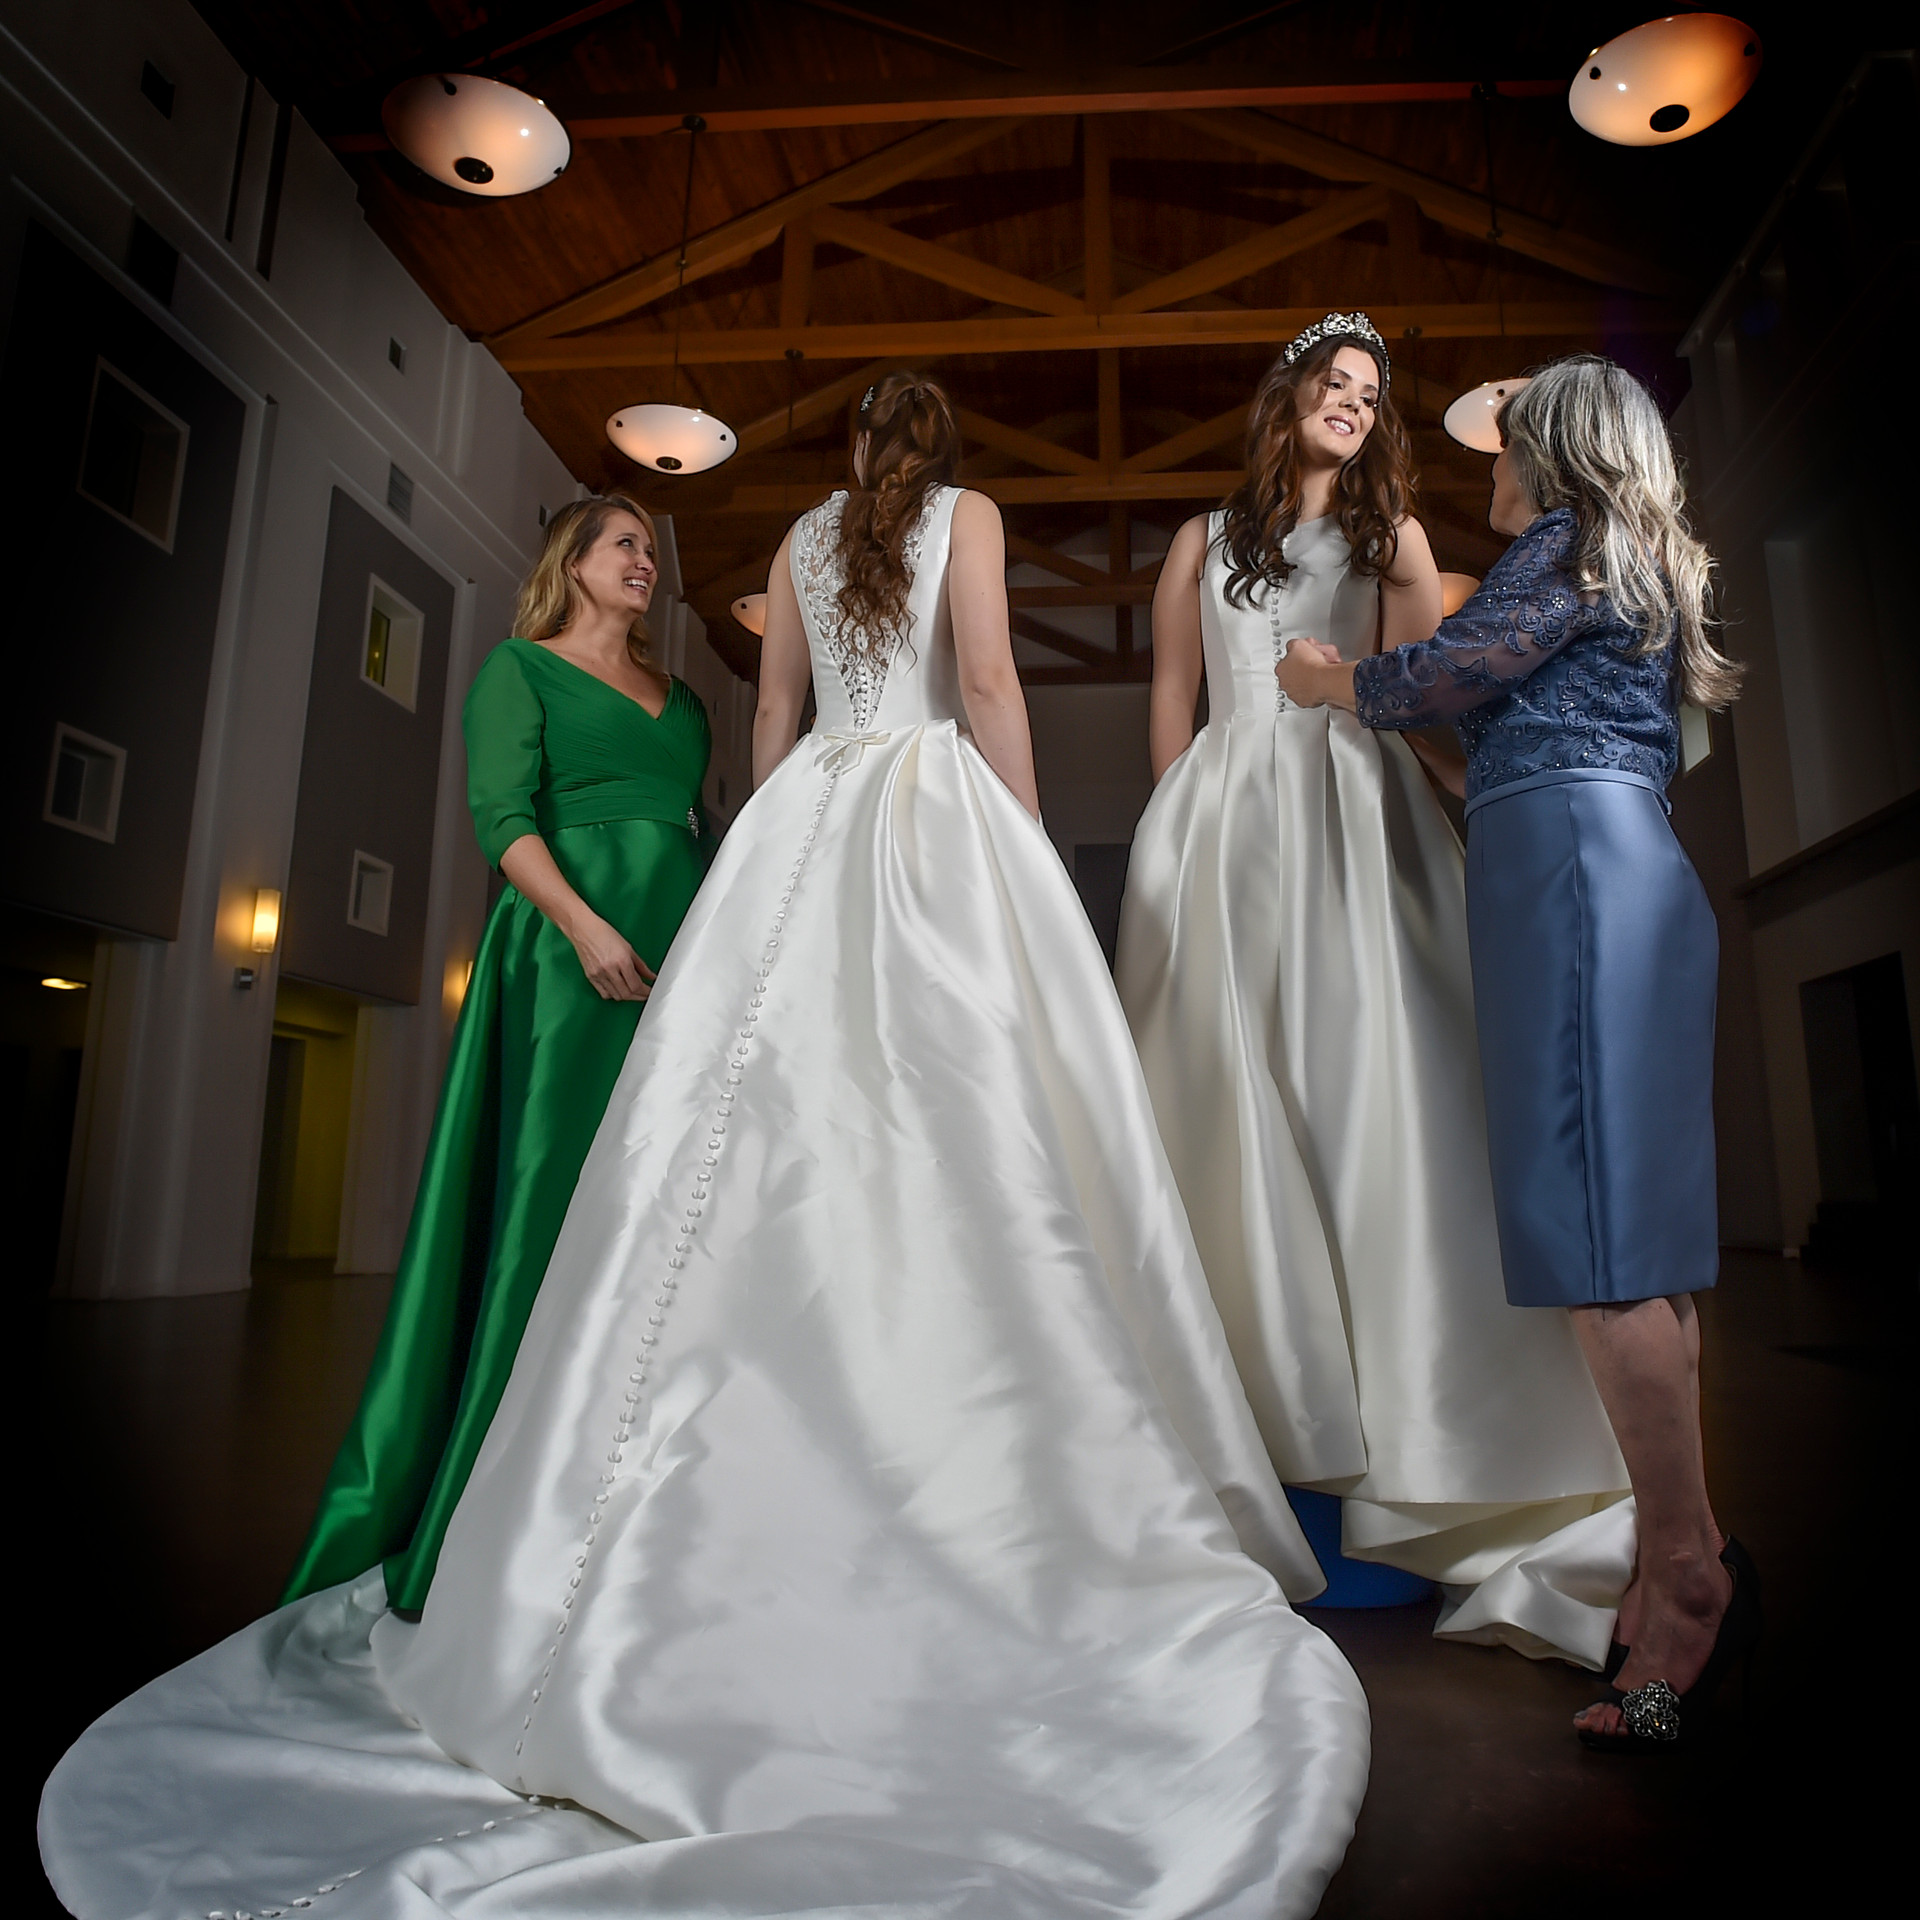 Kathy looks glamorous in the Pronovias Evenings gown of shamrock green 3/4 chiffon sleeve and Makato ballgown skirt with pockets. The surplice wrap creating a sloping v-neck and cinched waist showcases an hourglass look for this Mother of the Bride.   Charlene is wearing a lovely Marine Blue Occasions by Mon CheriMother of the Bride dress of embroidered and beaded net bodice and Makato straight skirt with banded waist. --- Lindsey and Maggie are showcasing Pronovias full skirted, sleeveless silk makato ballgowns with pockets! the covered button detail on the front and back of Maggie's gown is both classic and modern...with the added feature of a front slit to allow for easy movement. Lindsey's gown has a peak a boo back with lace and covered buttons as the decoration focus of this piece. Crowning glory by Symphony in gorgeous tiaras encrusted with crystals in royal crown replicas.